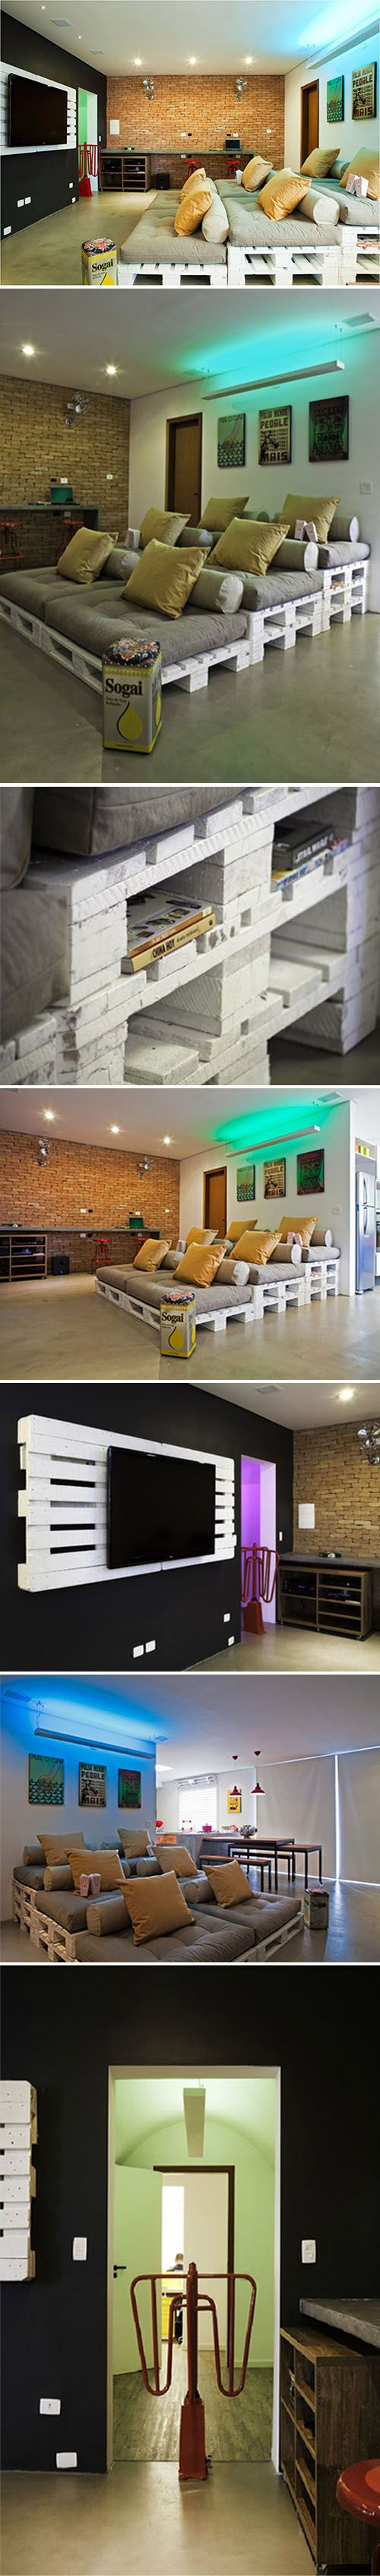 Wohndesign schlafzimmer einfach  best home images on pinterest  home ideas future house and